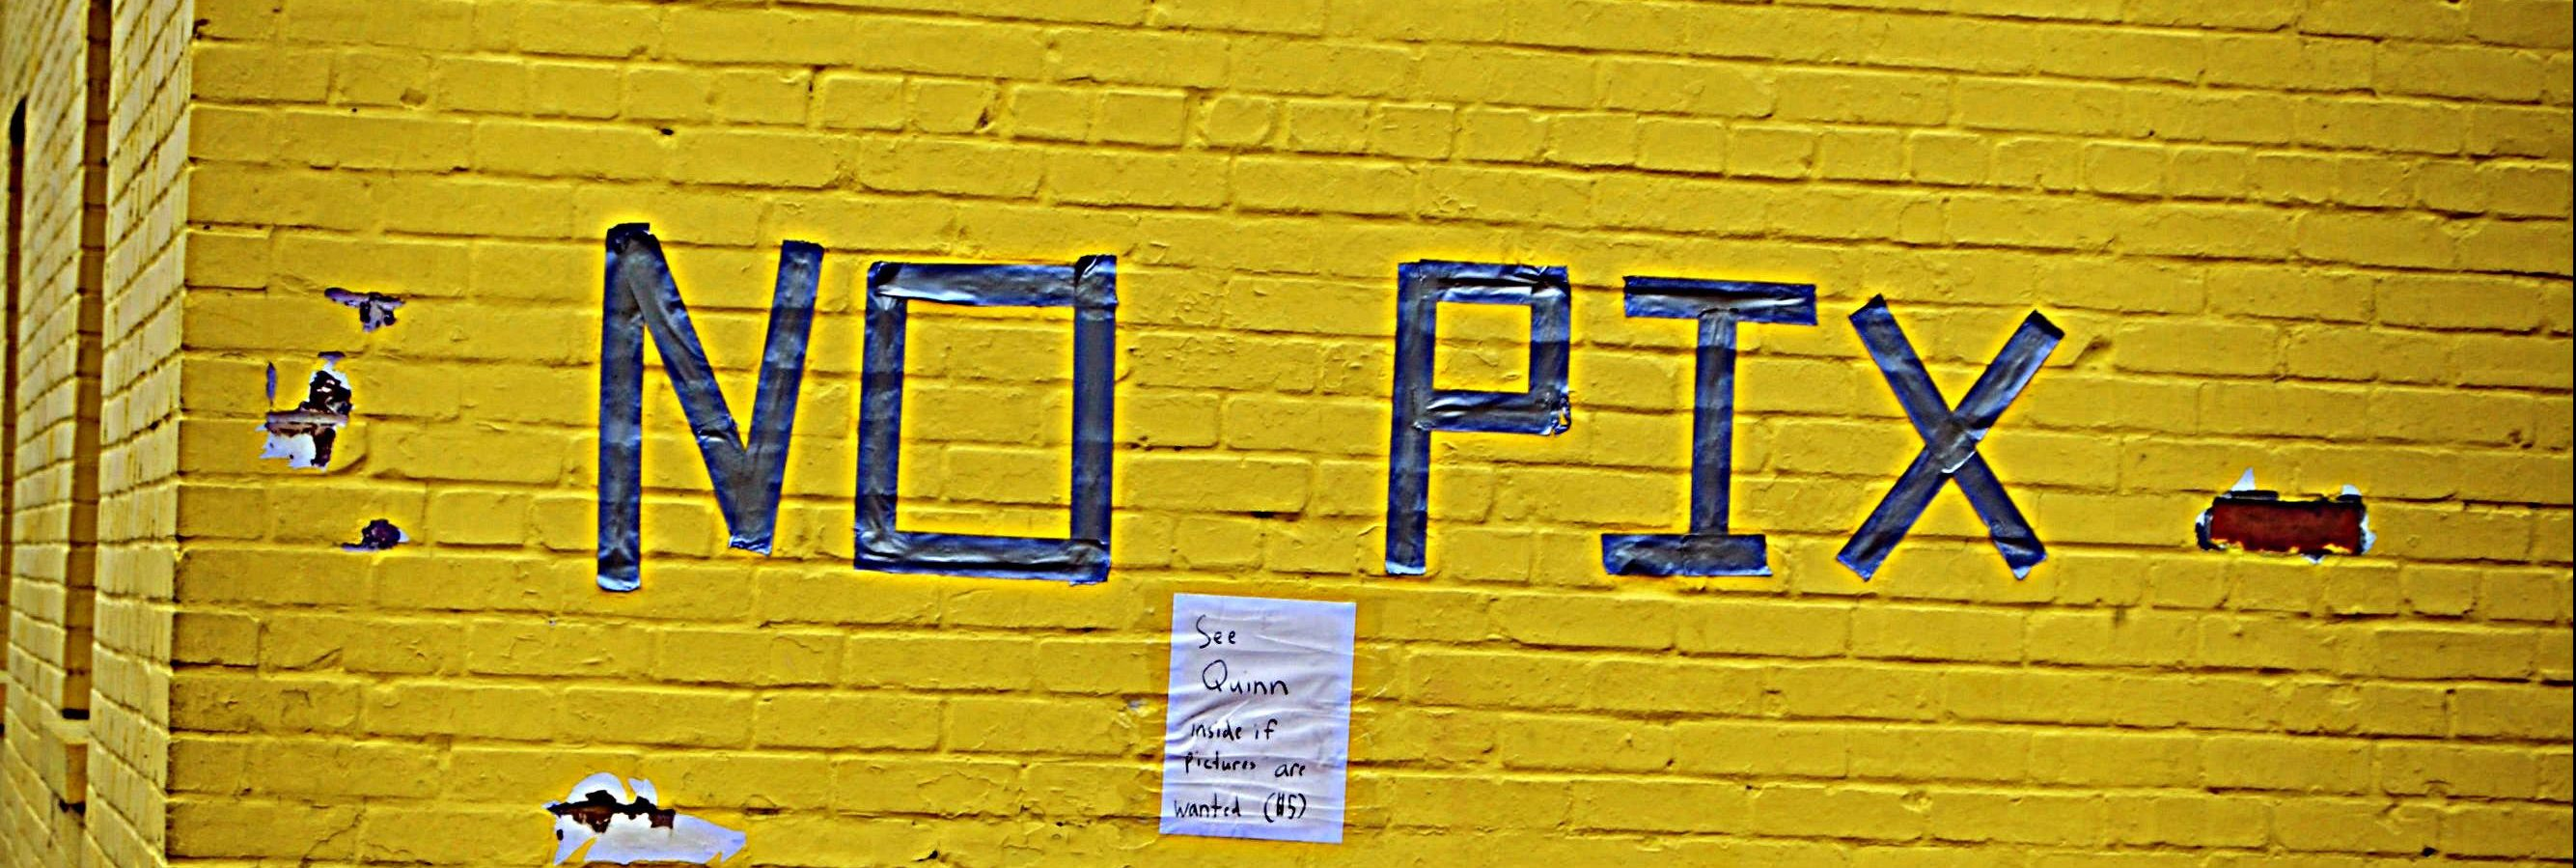 """No Pix"" grafiti art on a yellow brick wall"